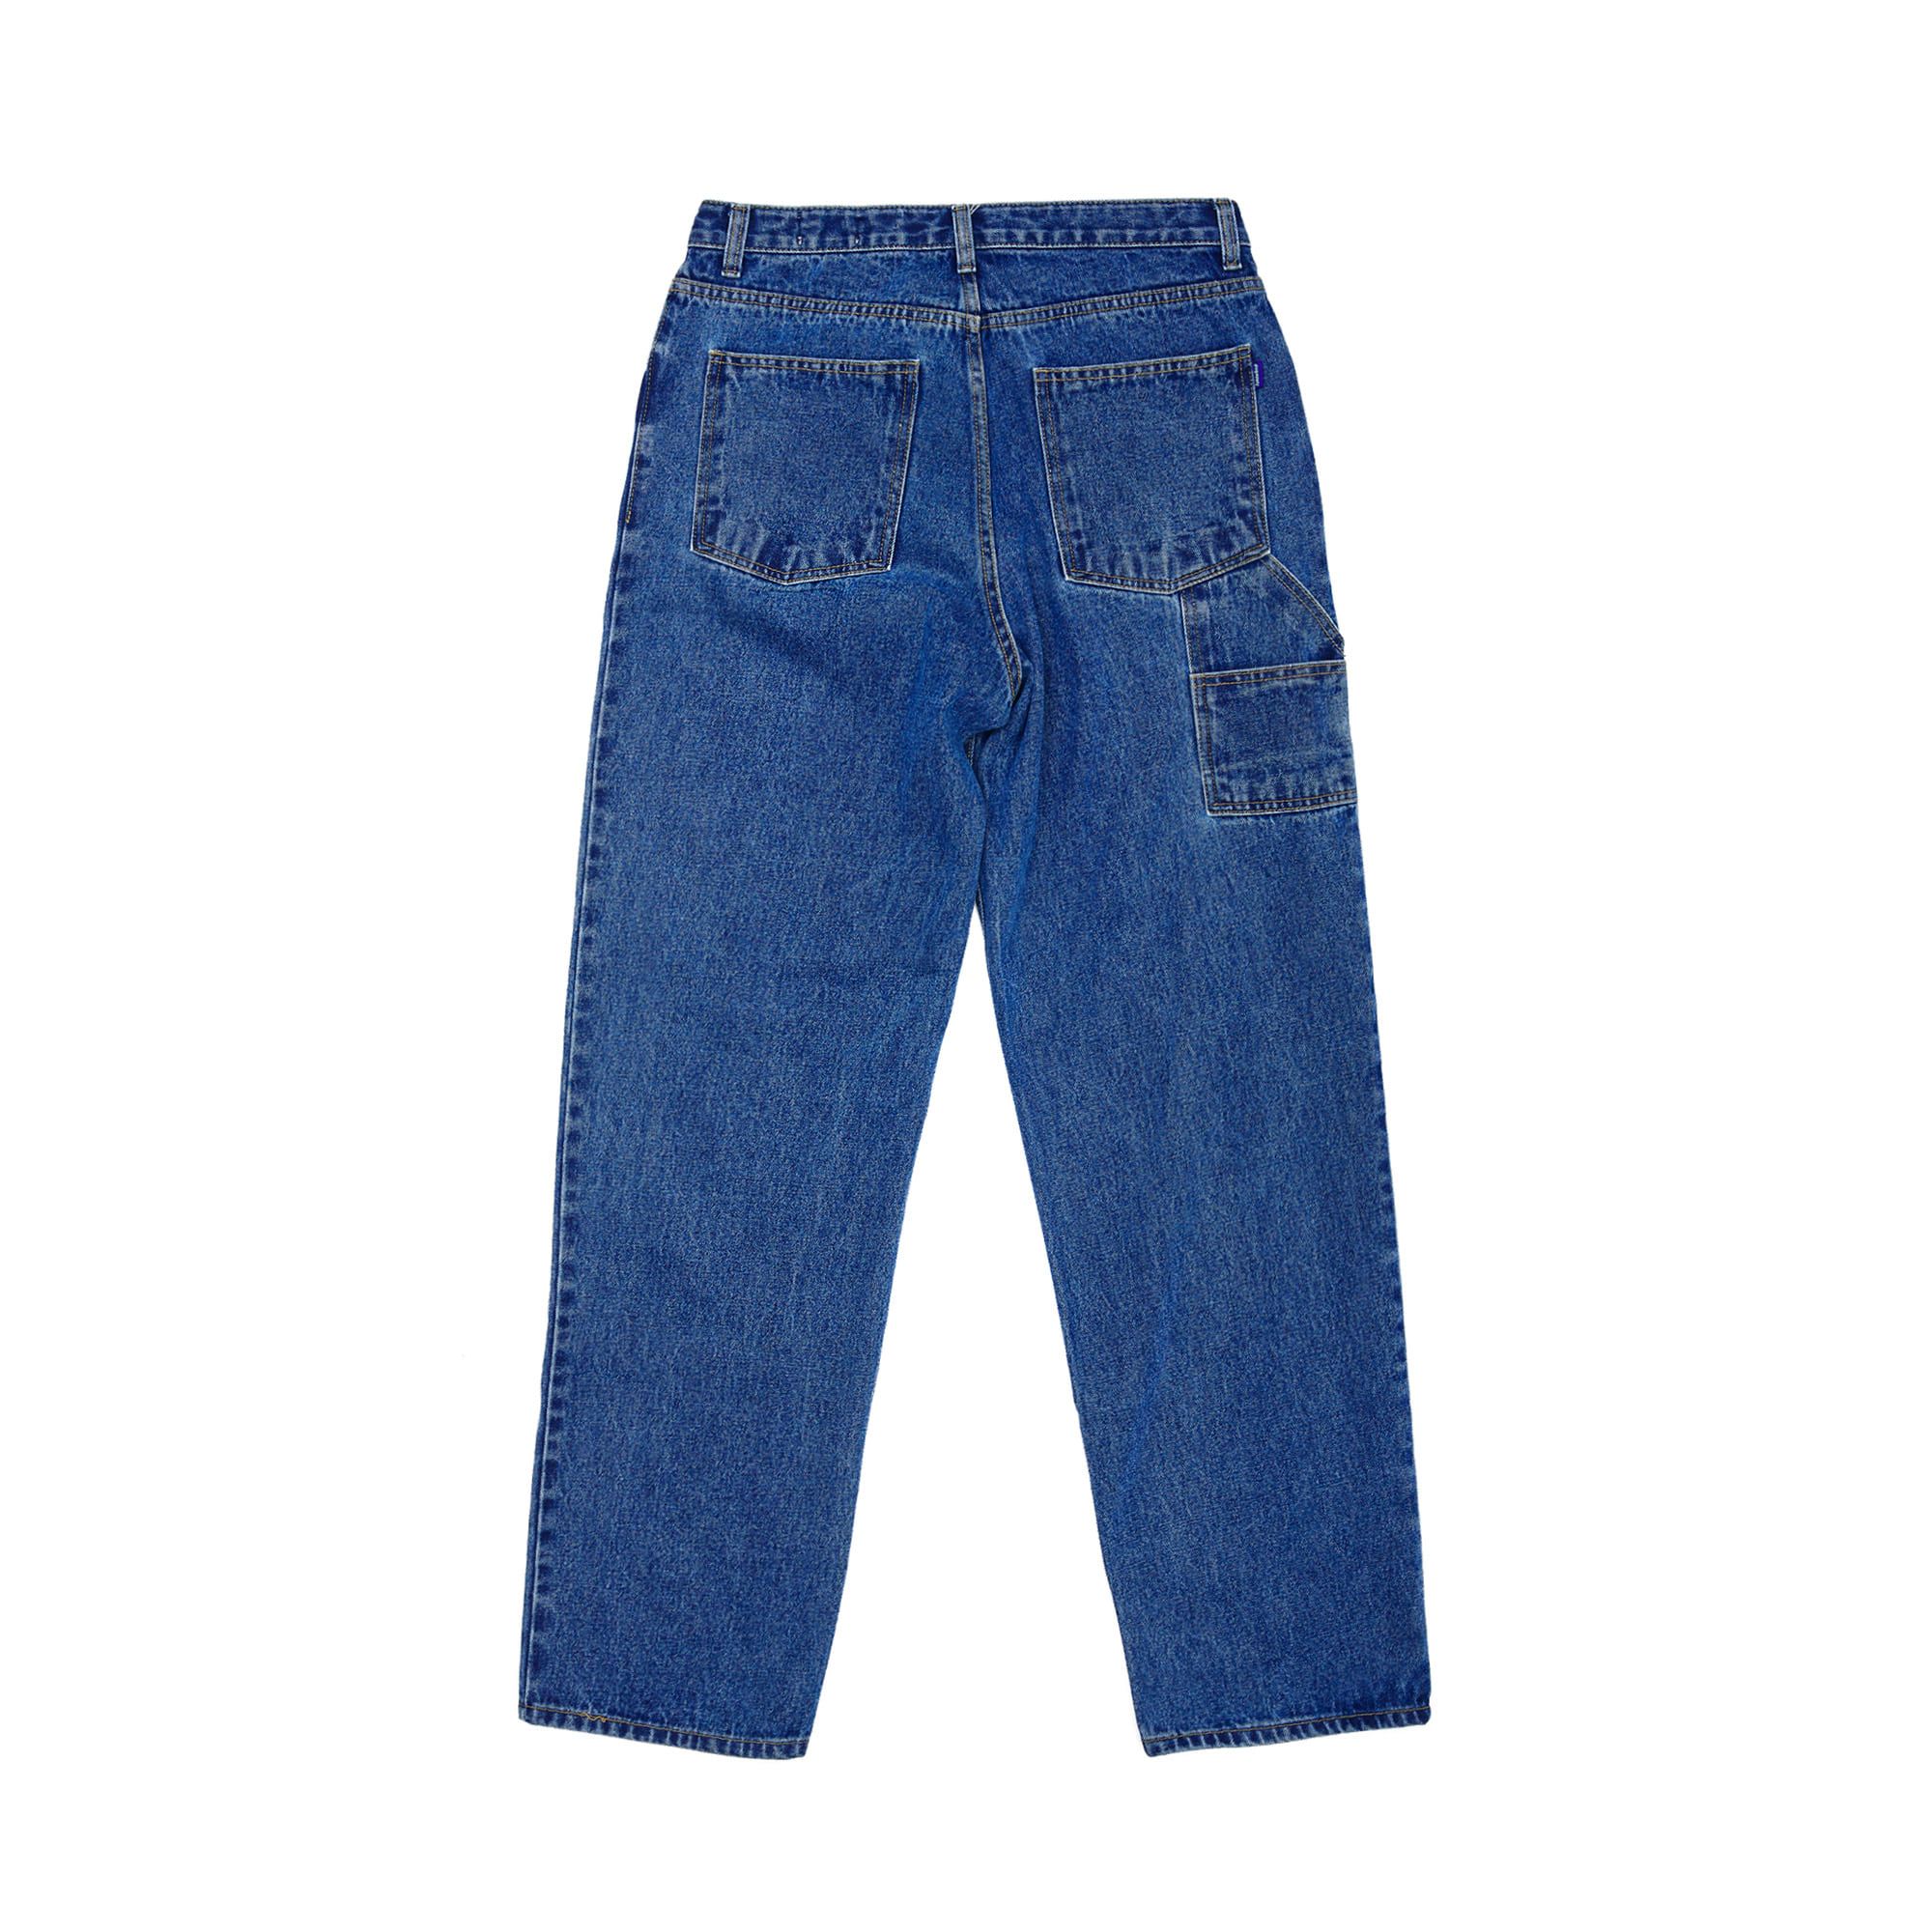 BSRABBIT CARPENTER DENIM PANTS / DEEPBLUE